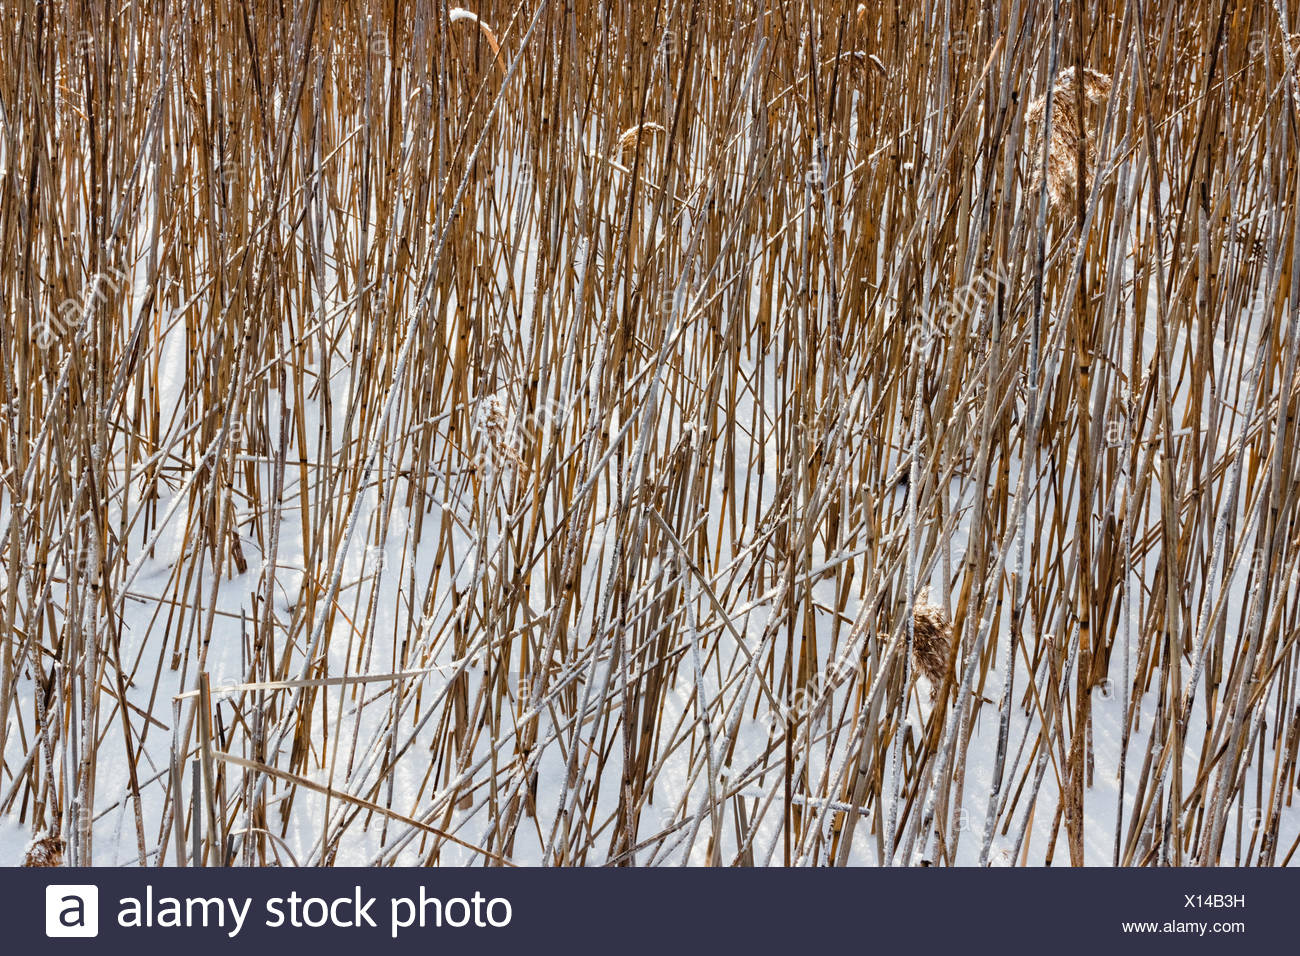 Dried plants. - Stock Image